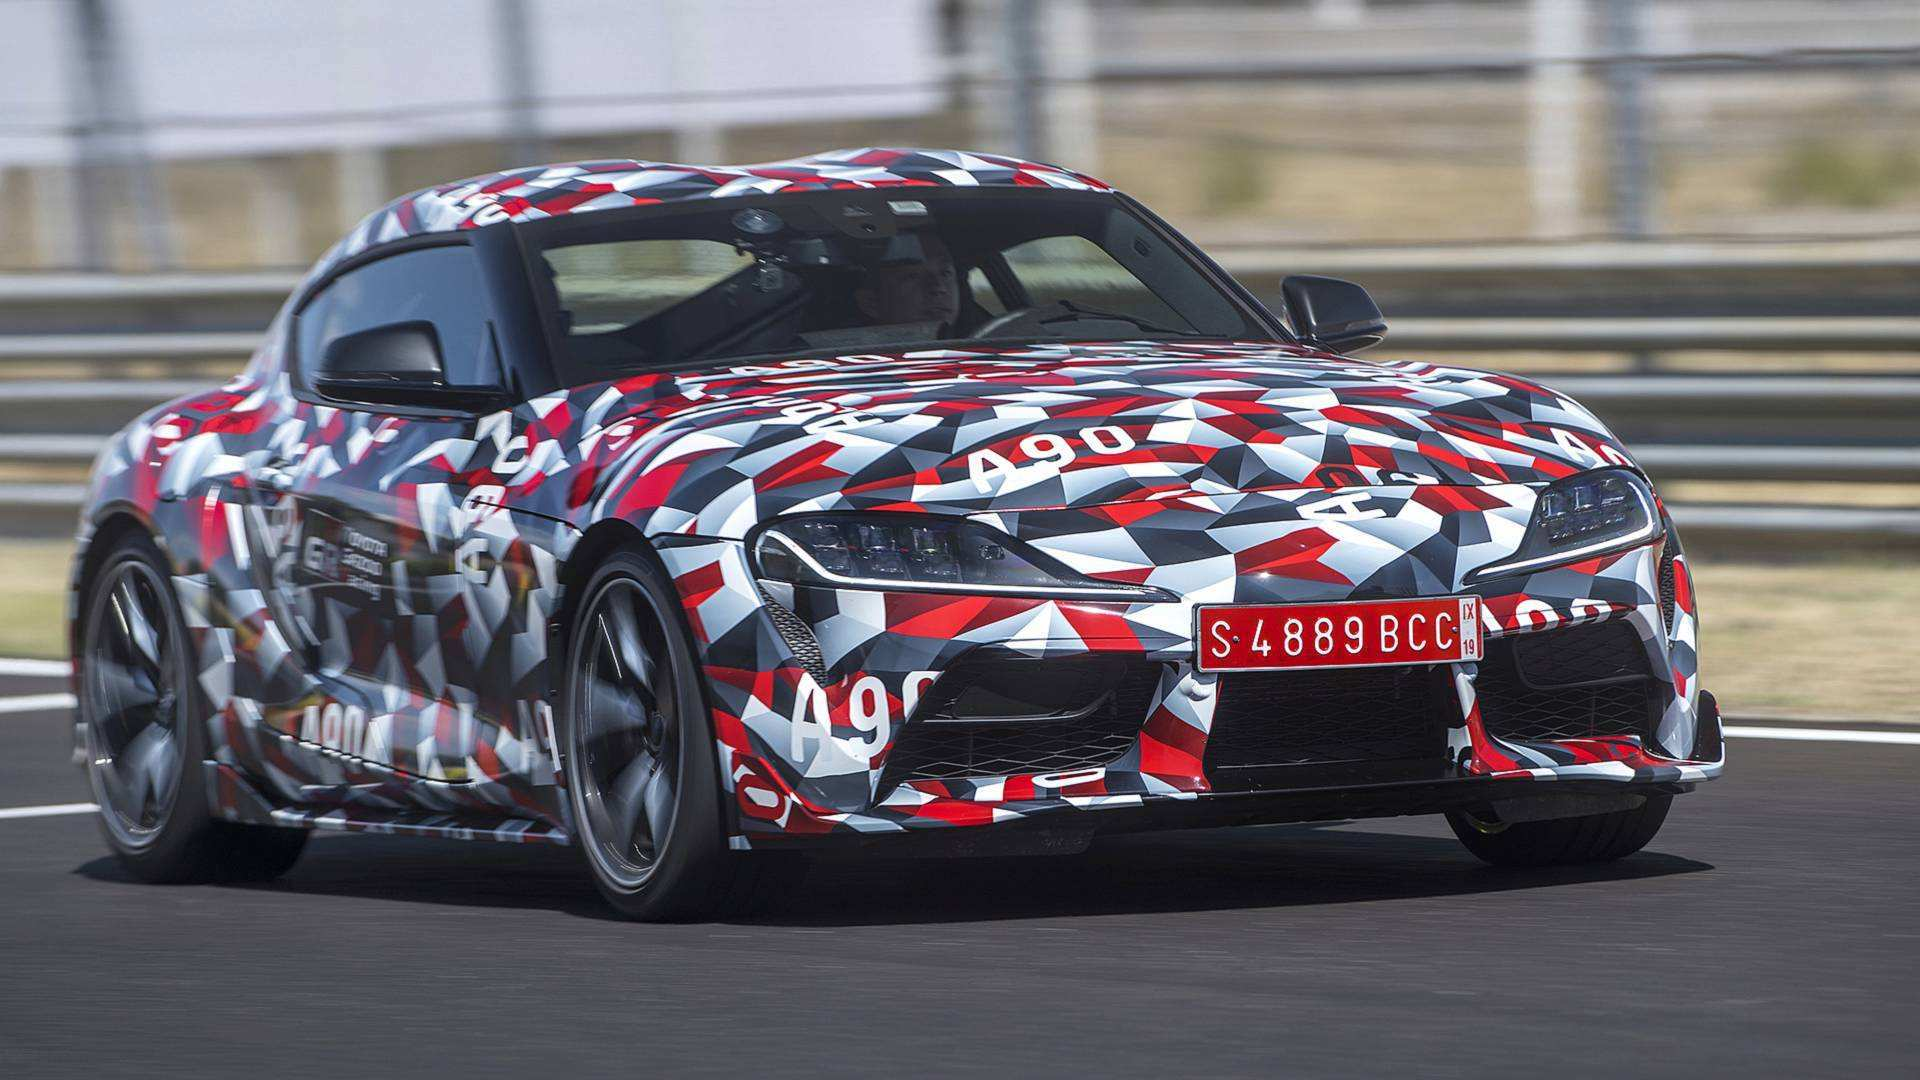 97 New 2019 Toyota Supra Engine Price Design and Review